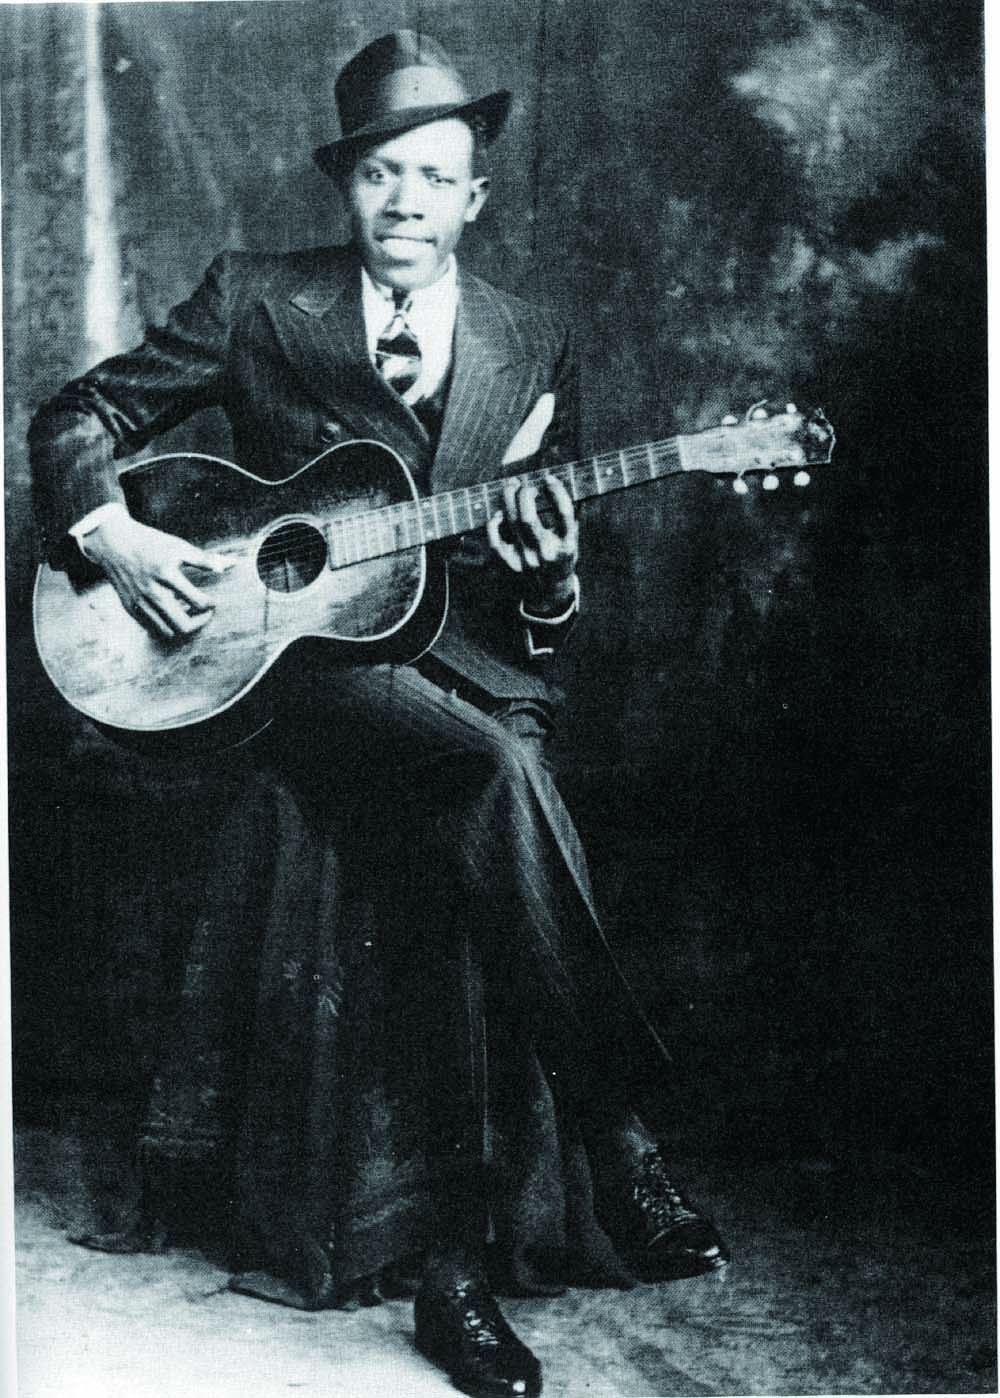 011510 Robert Johnson.jpg